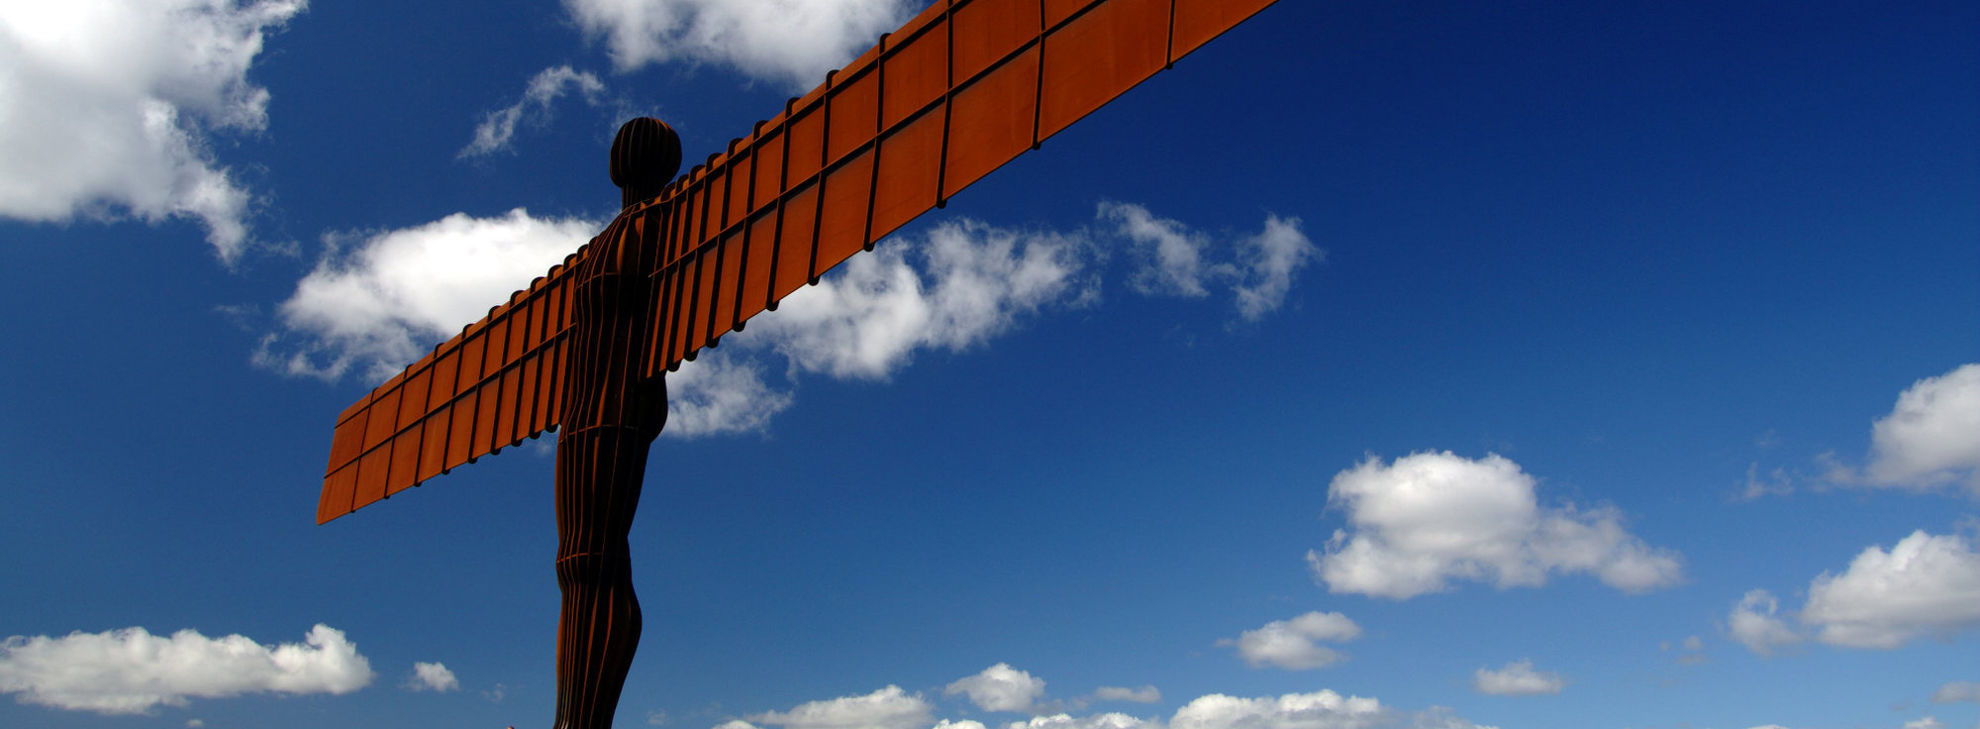 Explore Angel of the North